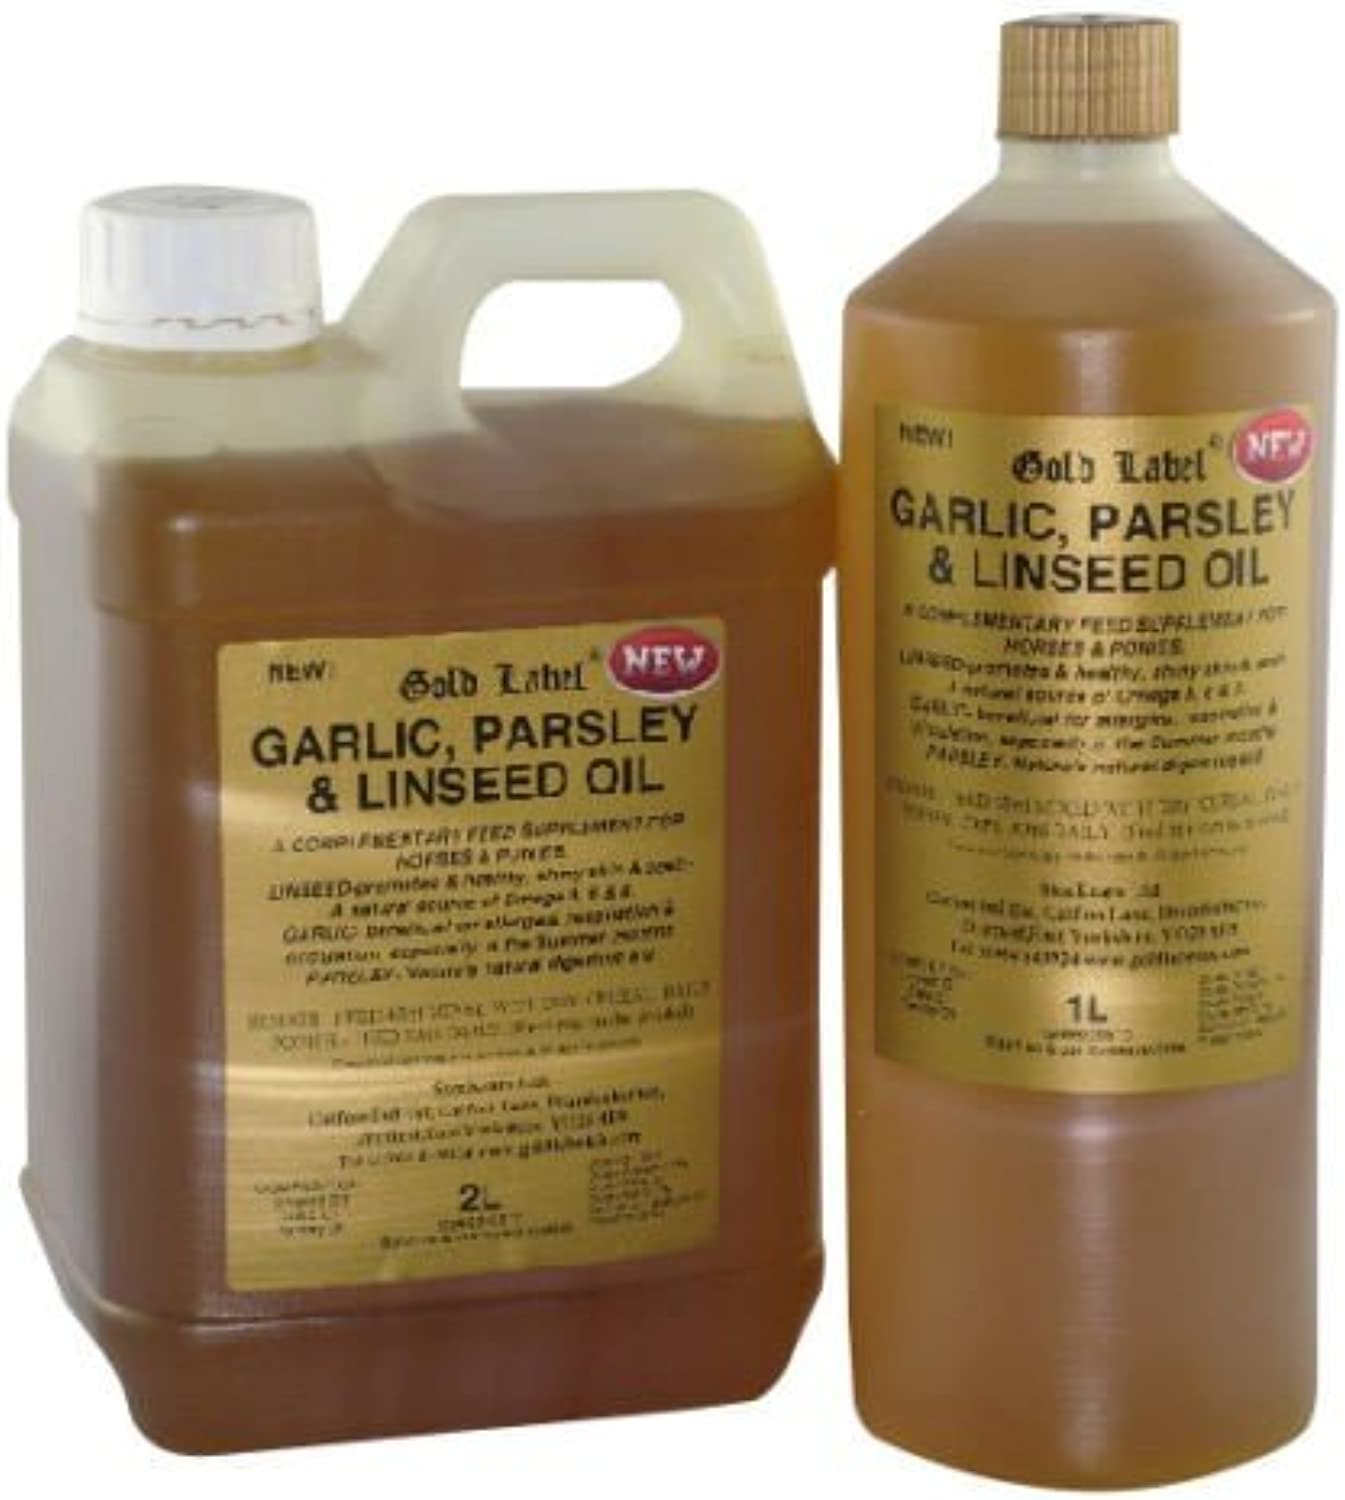 gold Label Garlic, Parsley & Linseed Oil x Size  5 Lt